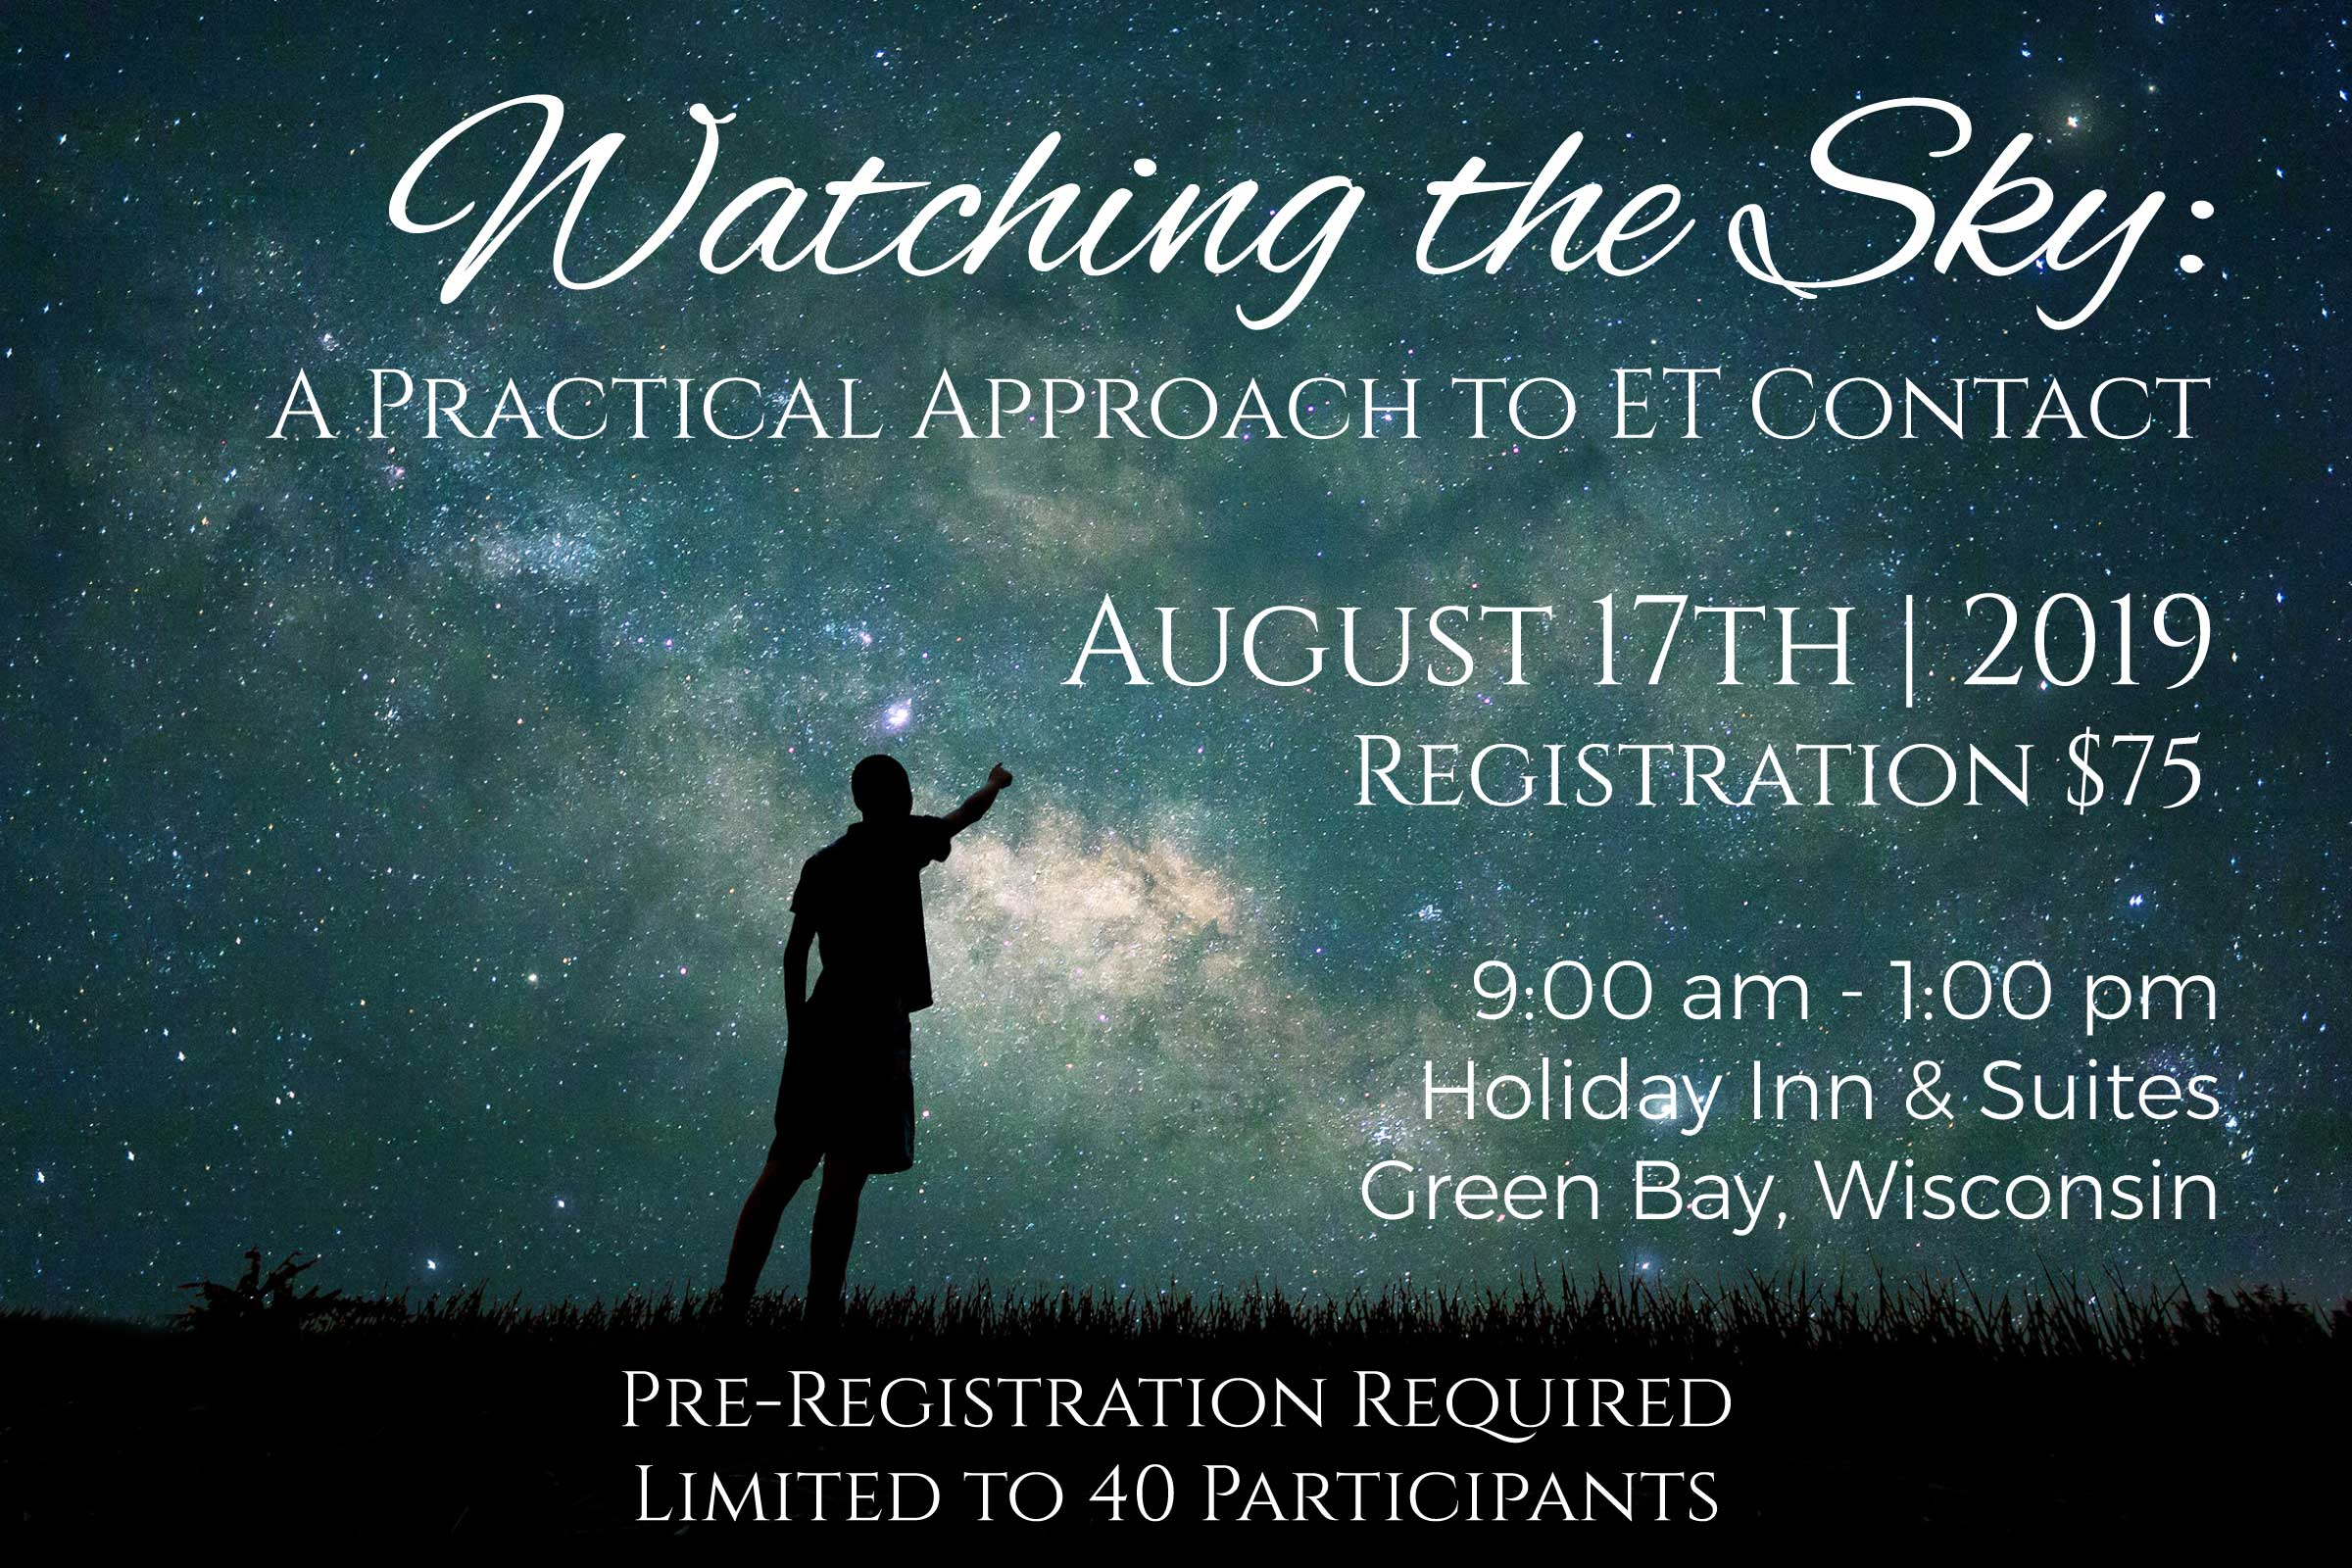 Watching the Sky: A Practical Approach to ET Contact